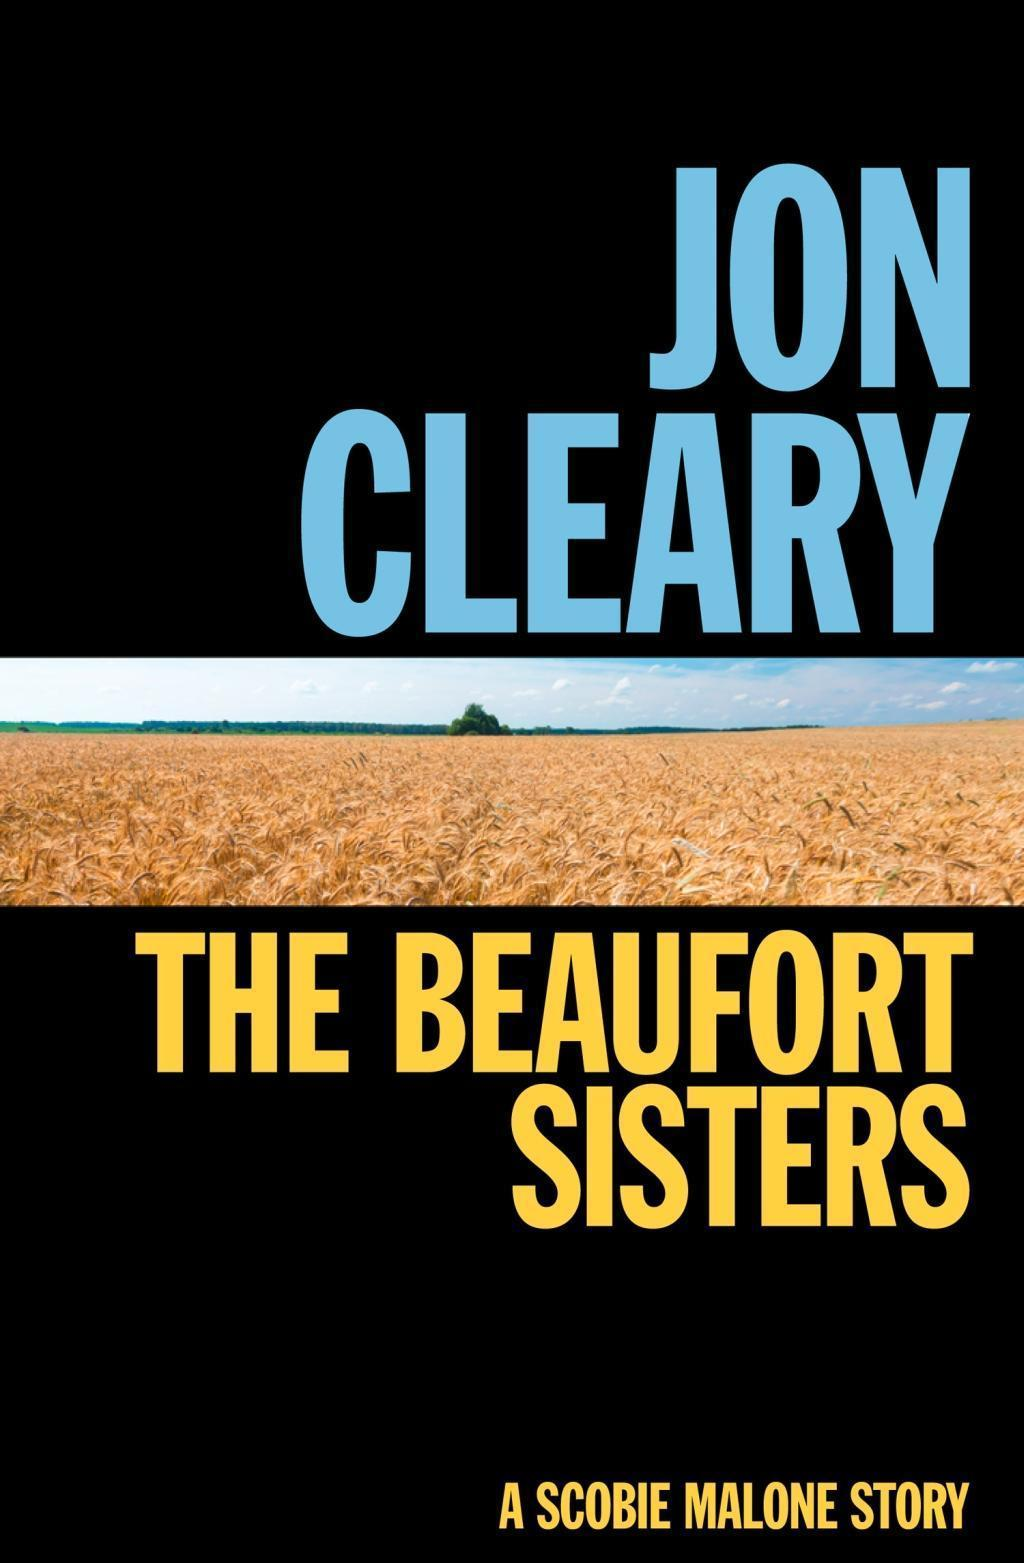 The Beaufort Sisters